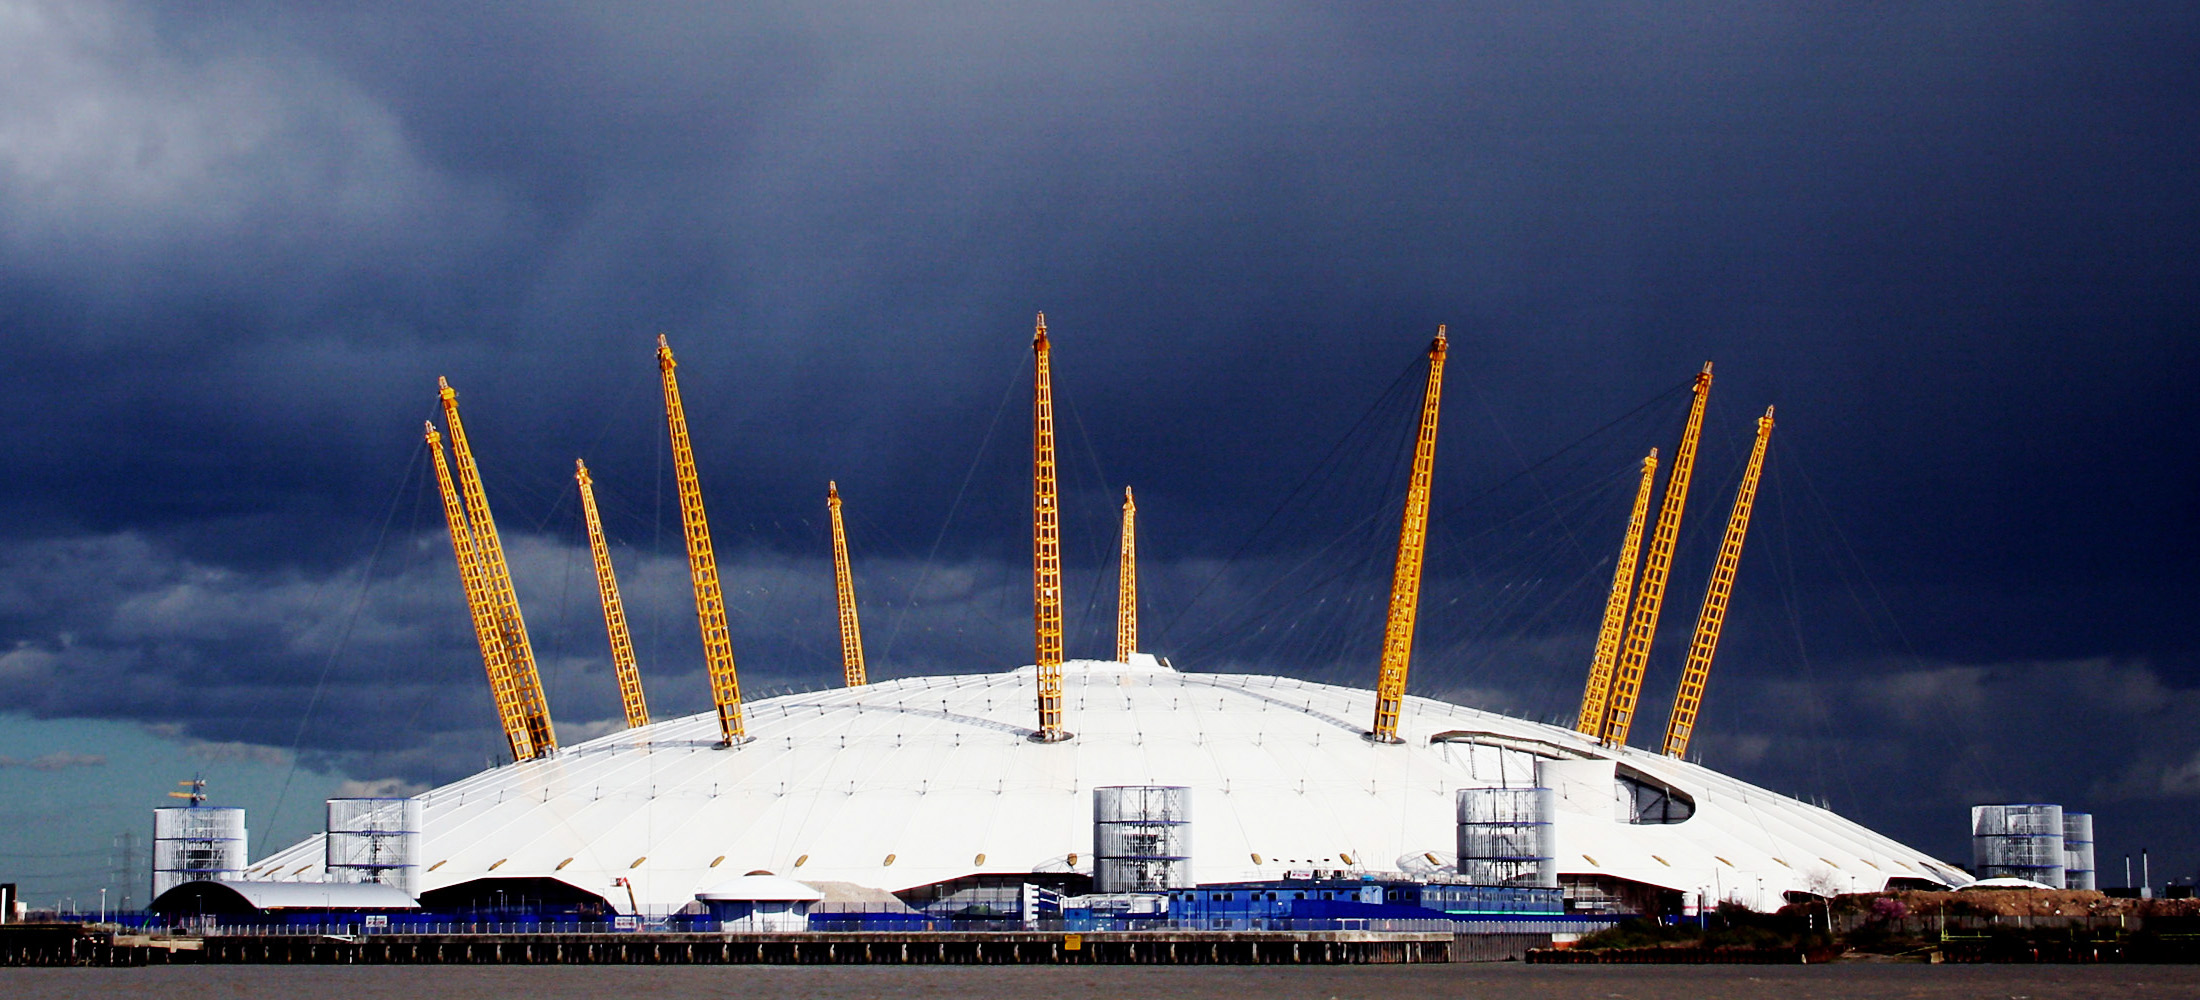 File:Millennium Dome (zakgollop) version.jpg - Wikipedia, the free ...